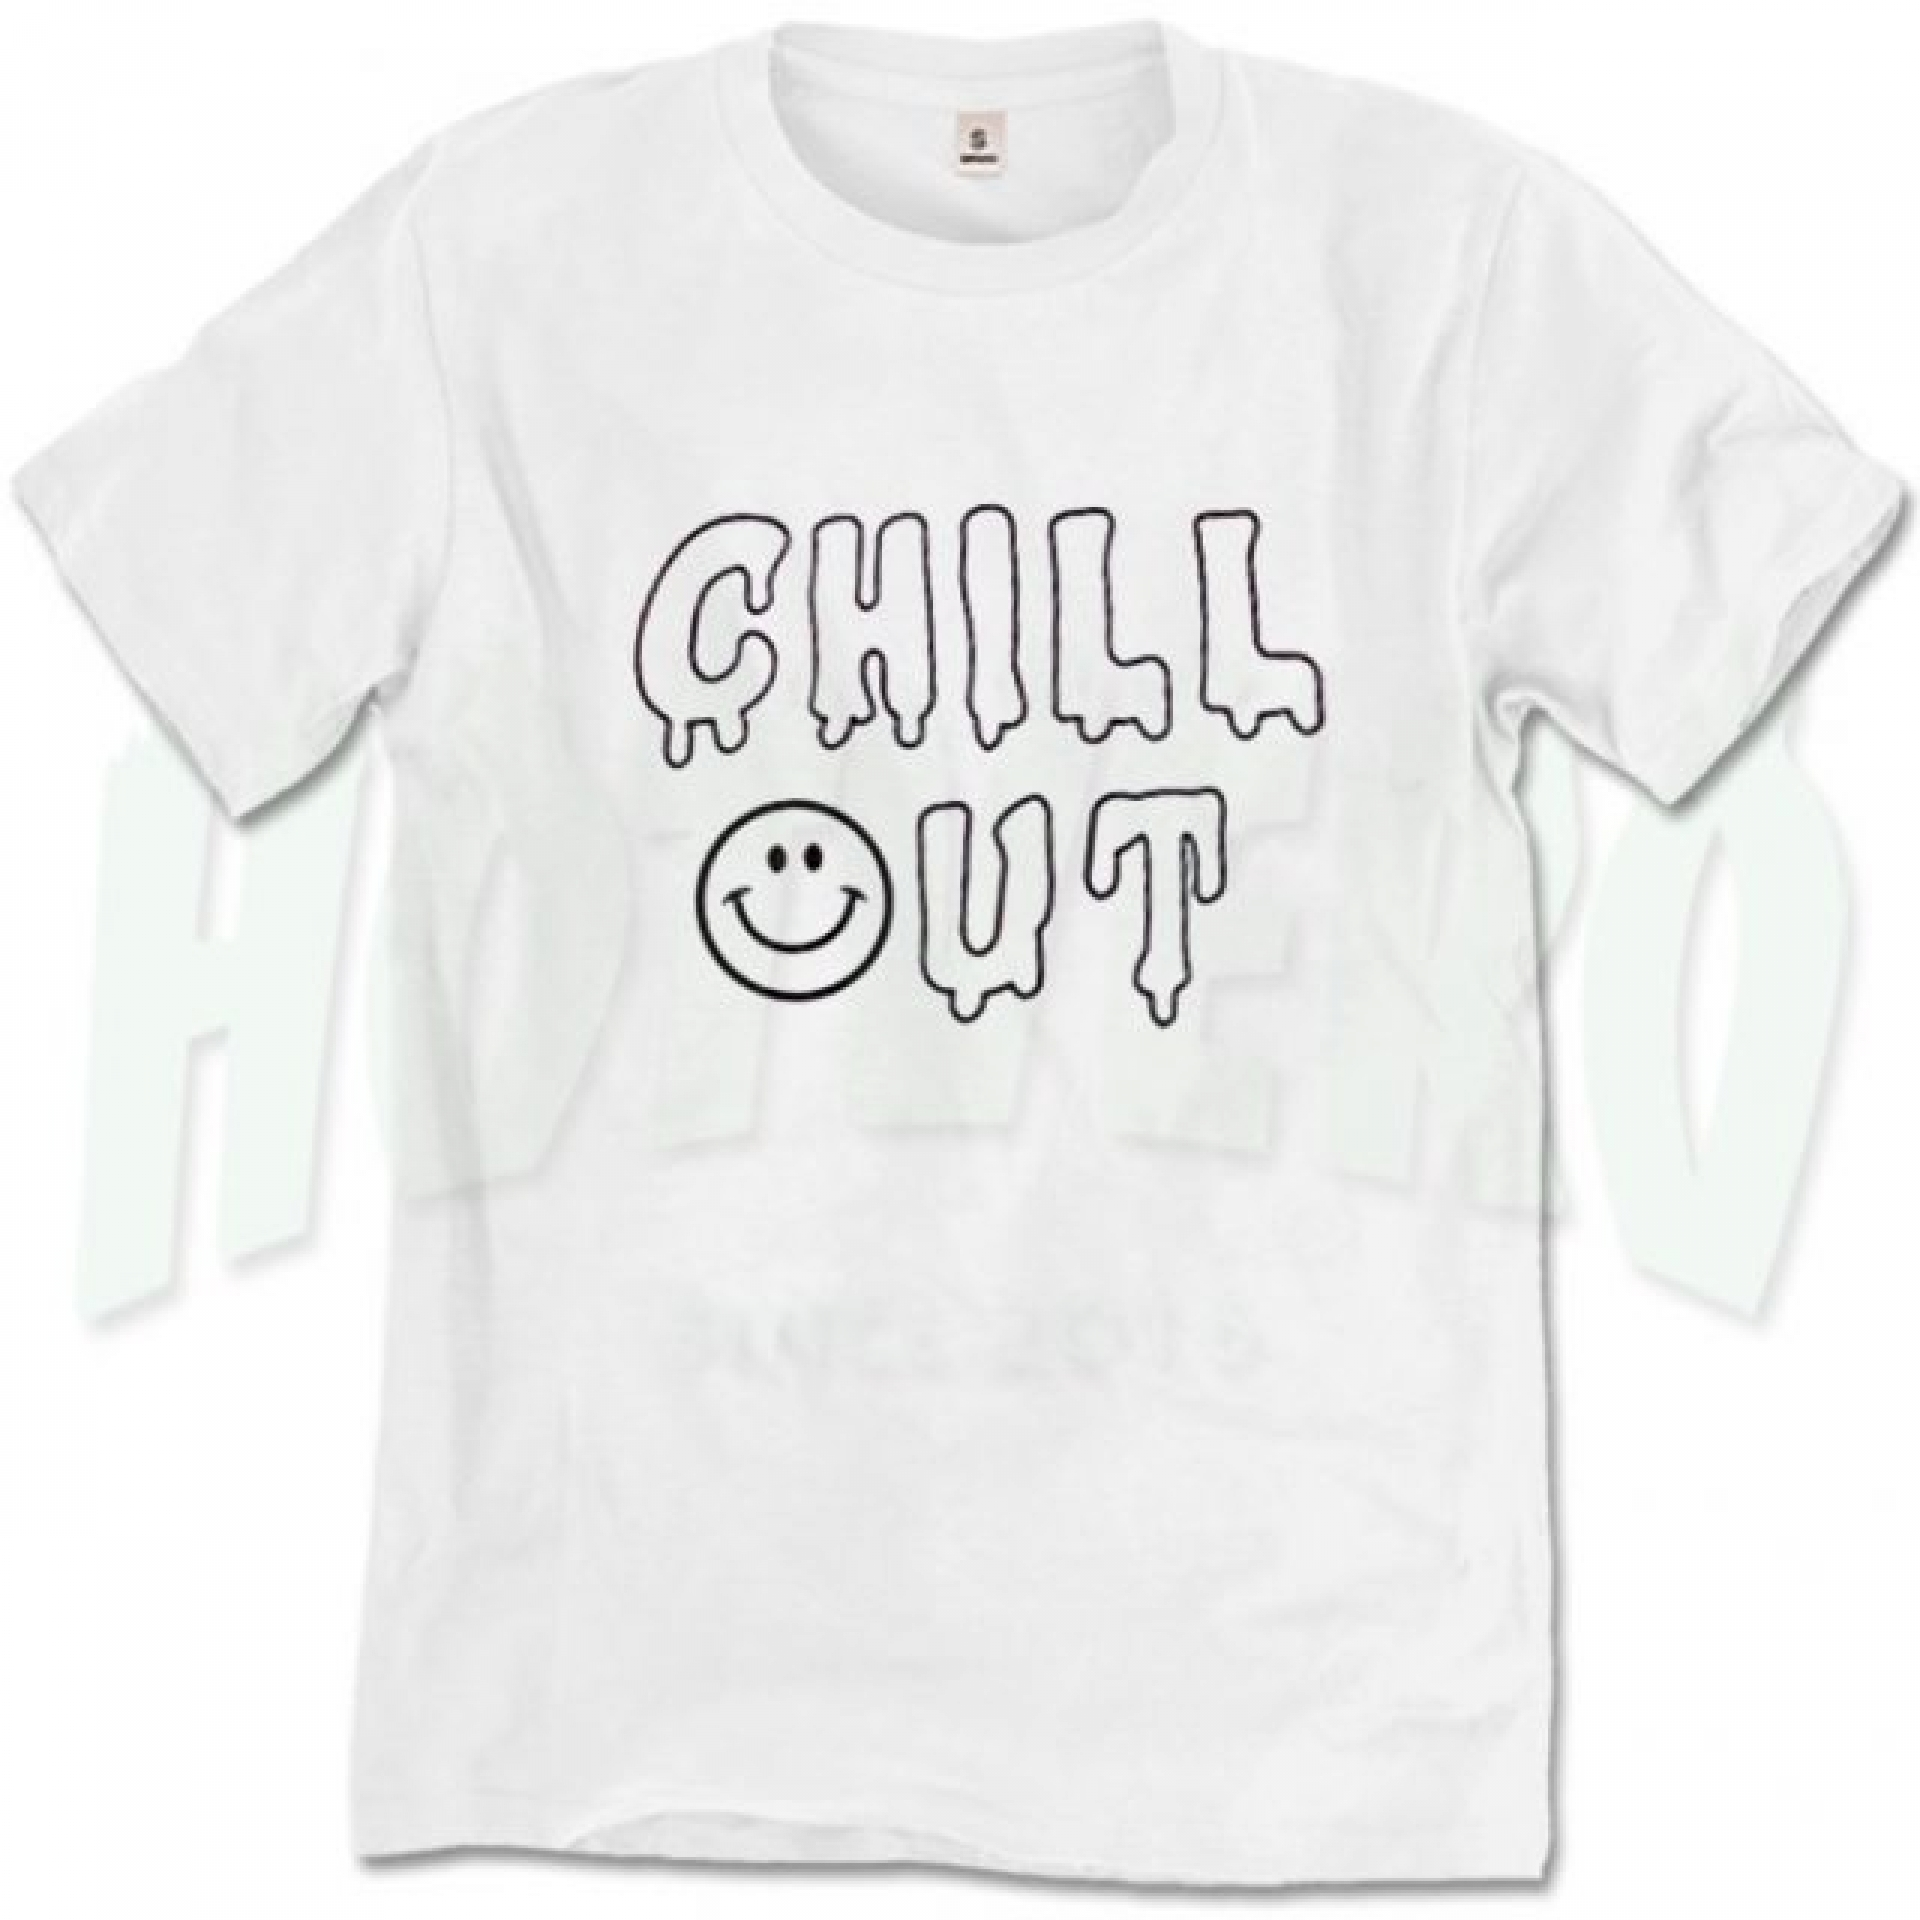 Chill Out Urban T Shirt For Men And Women